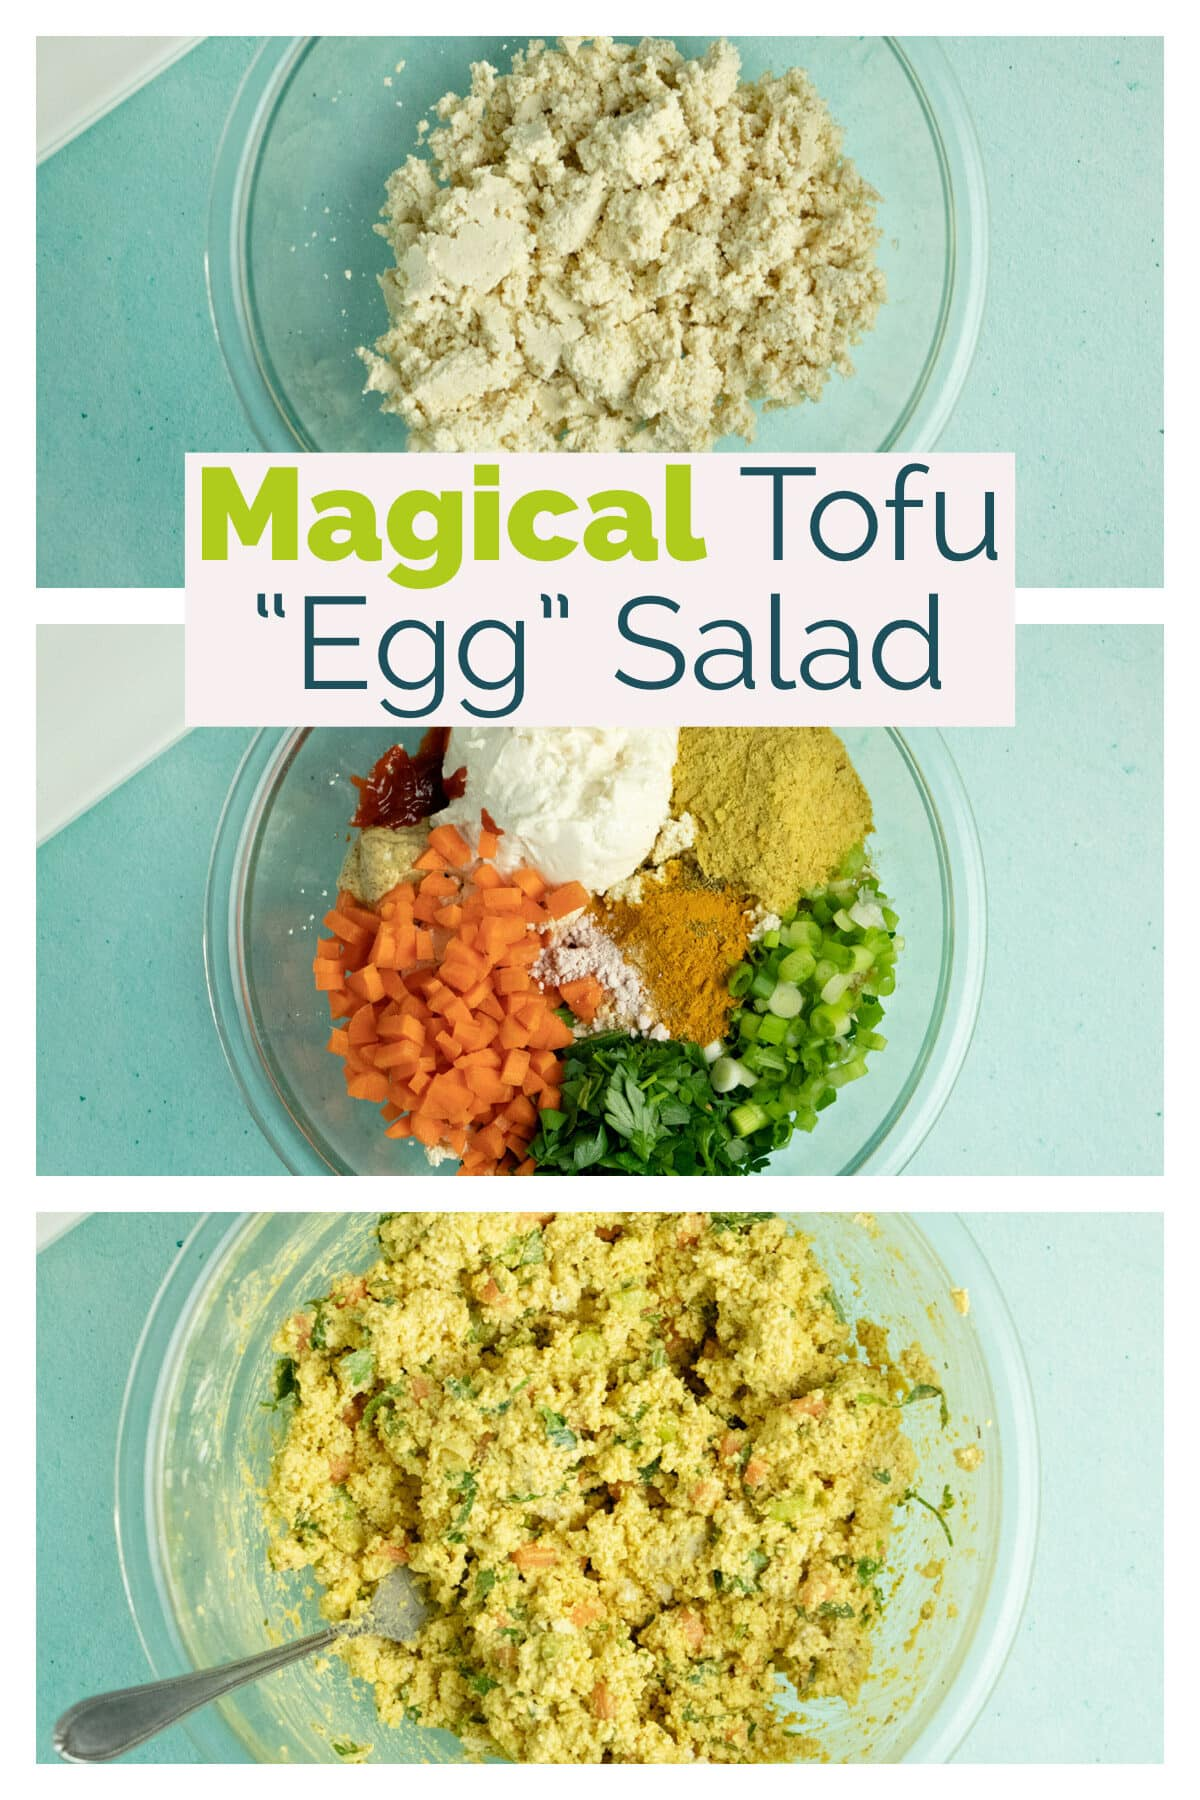 image collage showing tofu egg salad prep, text overlay